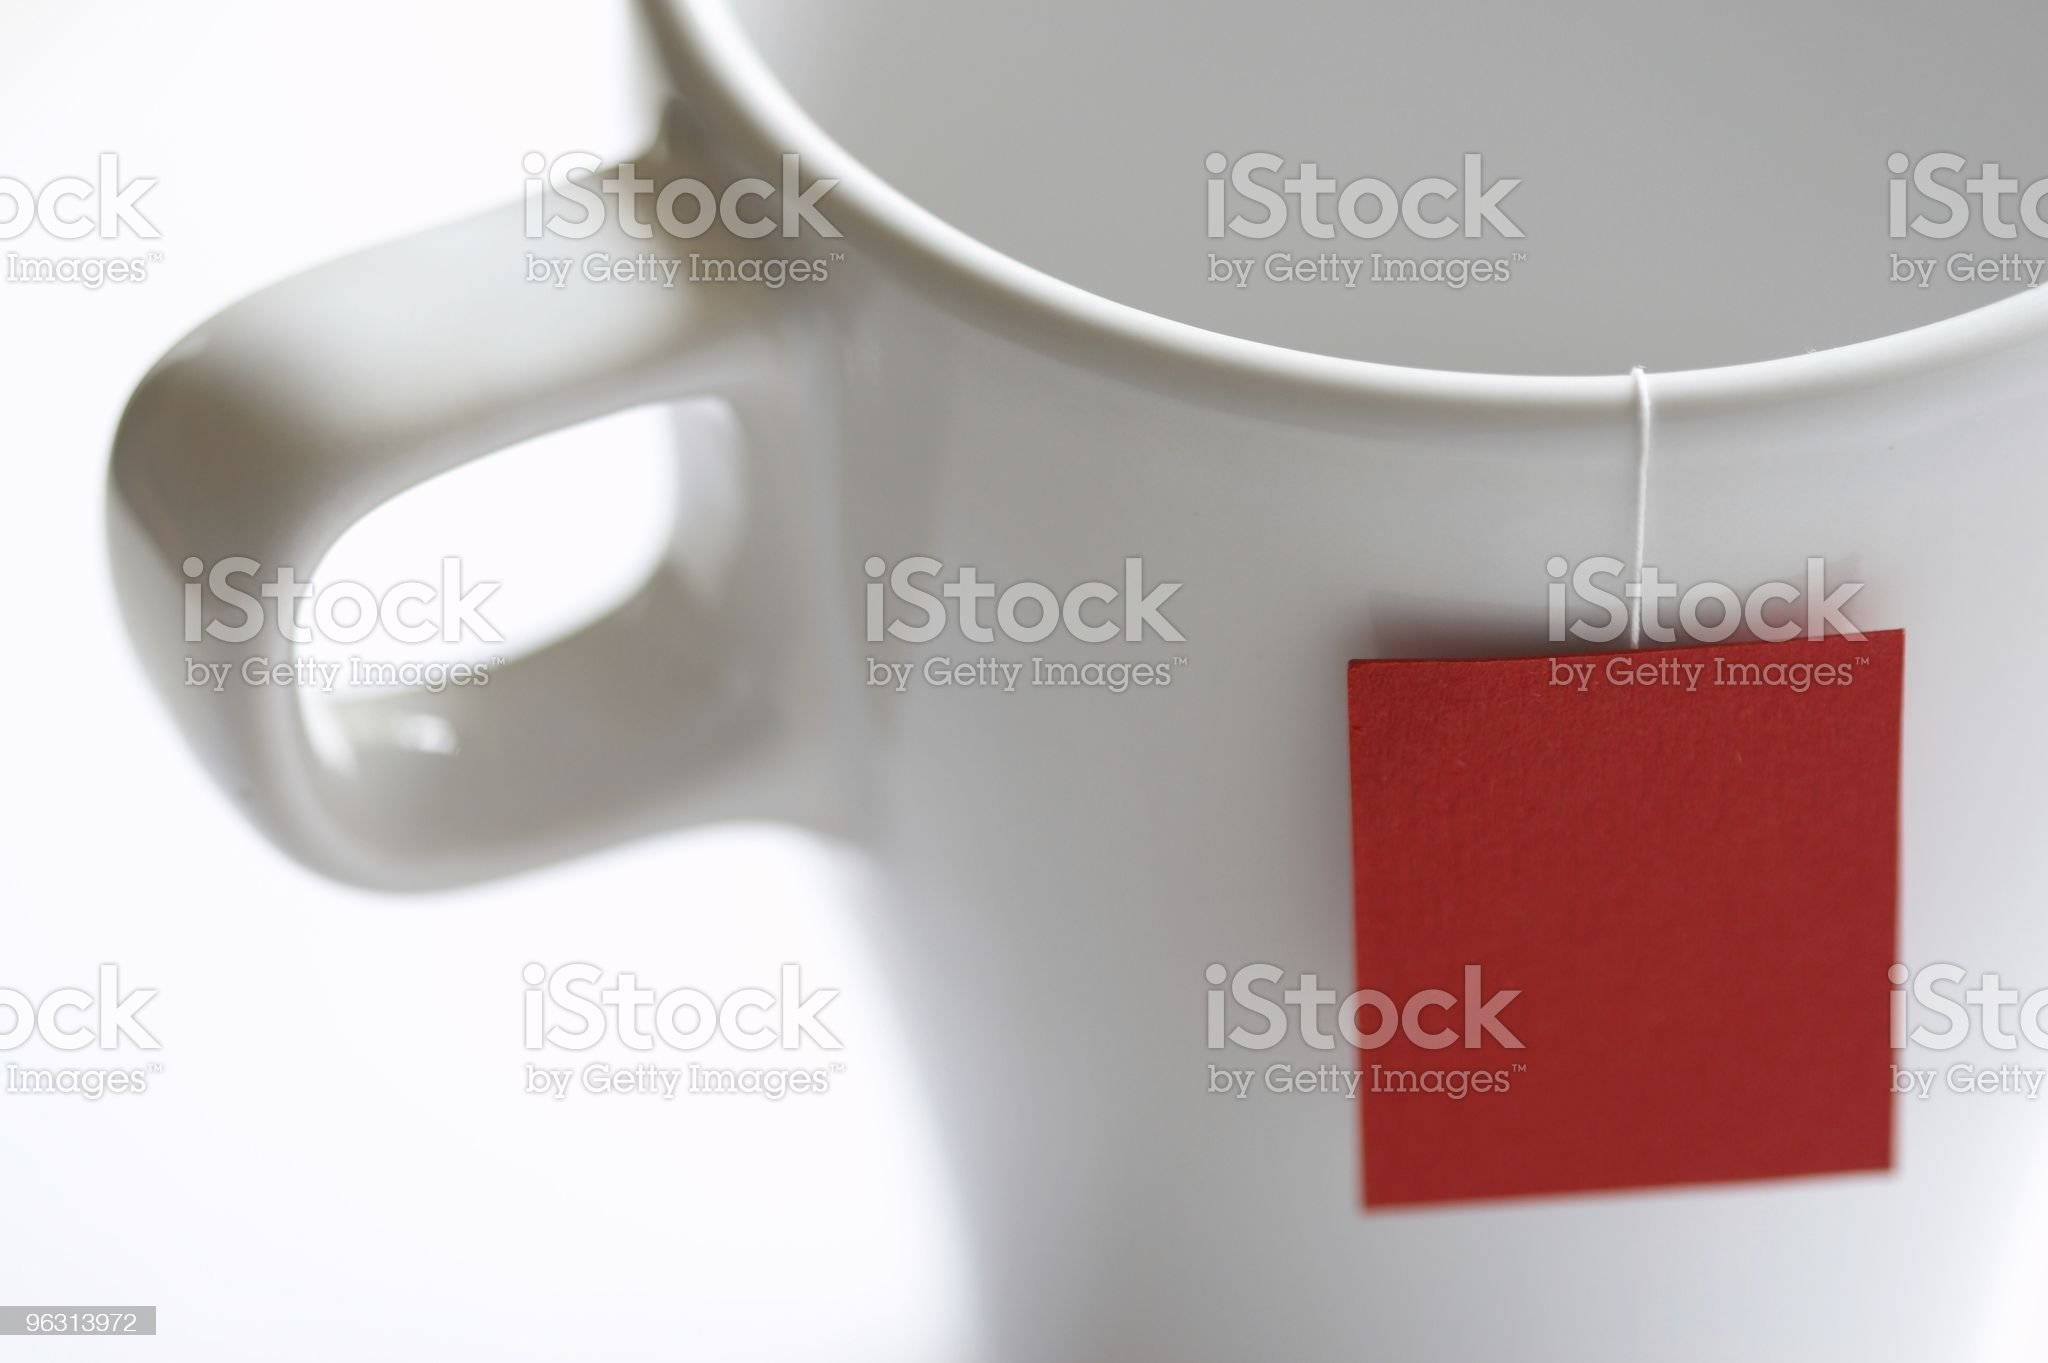 White tea cup with red teabag lable. royalty-free stock photo